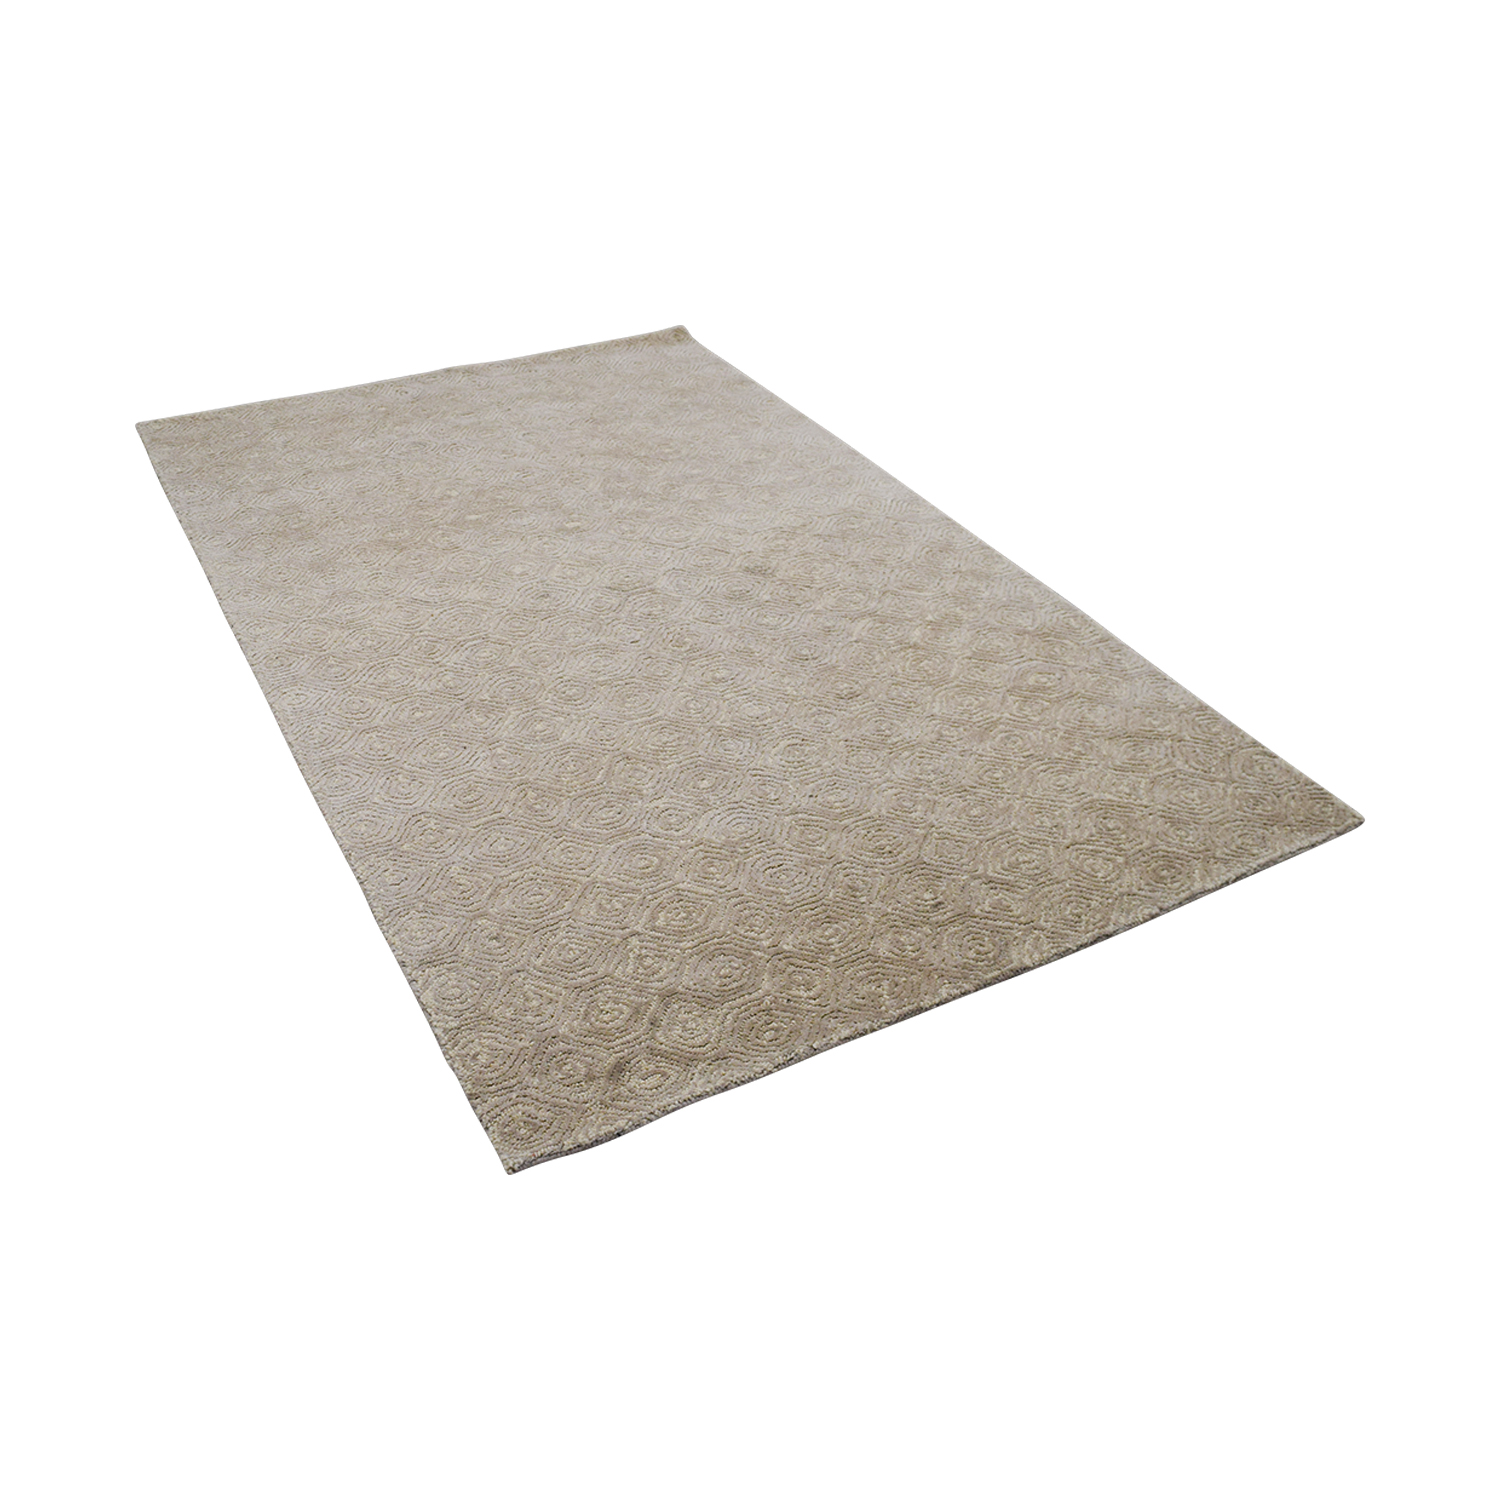 Obeetee Obeetee Off White with Spiral Design Rug Rugs